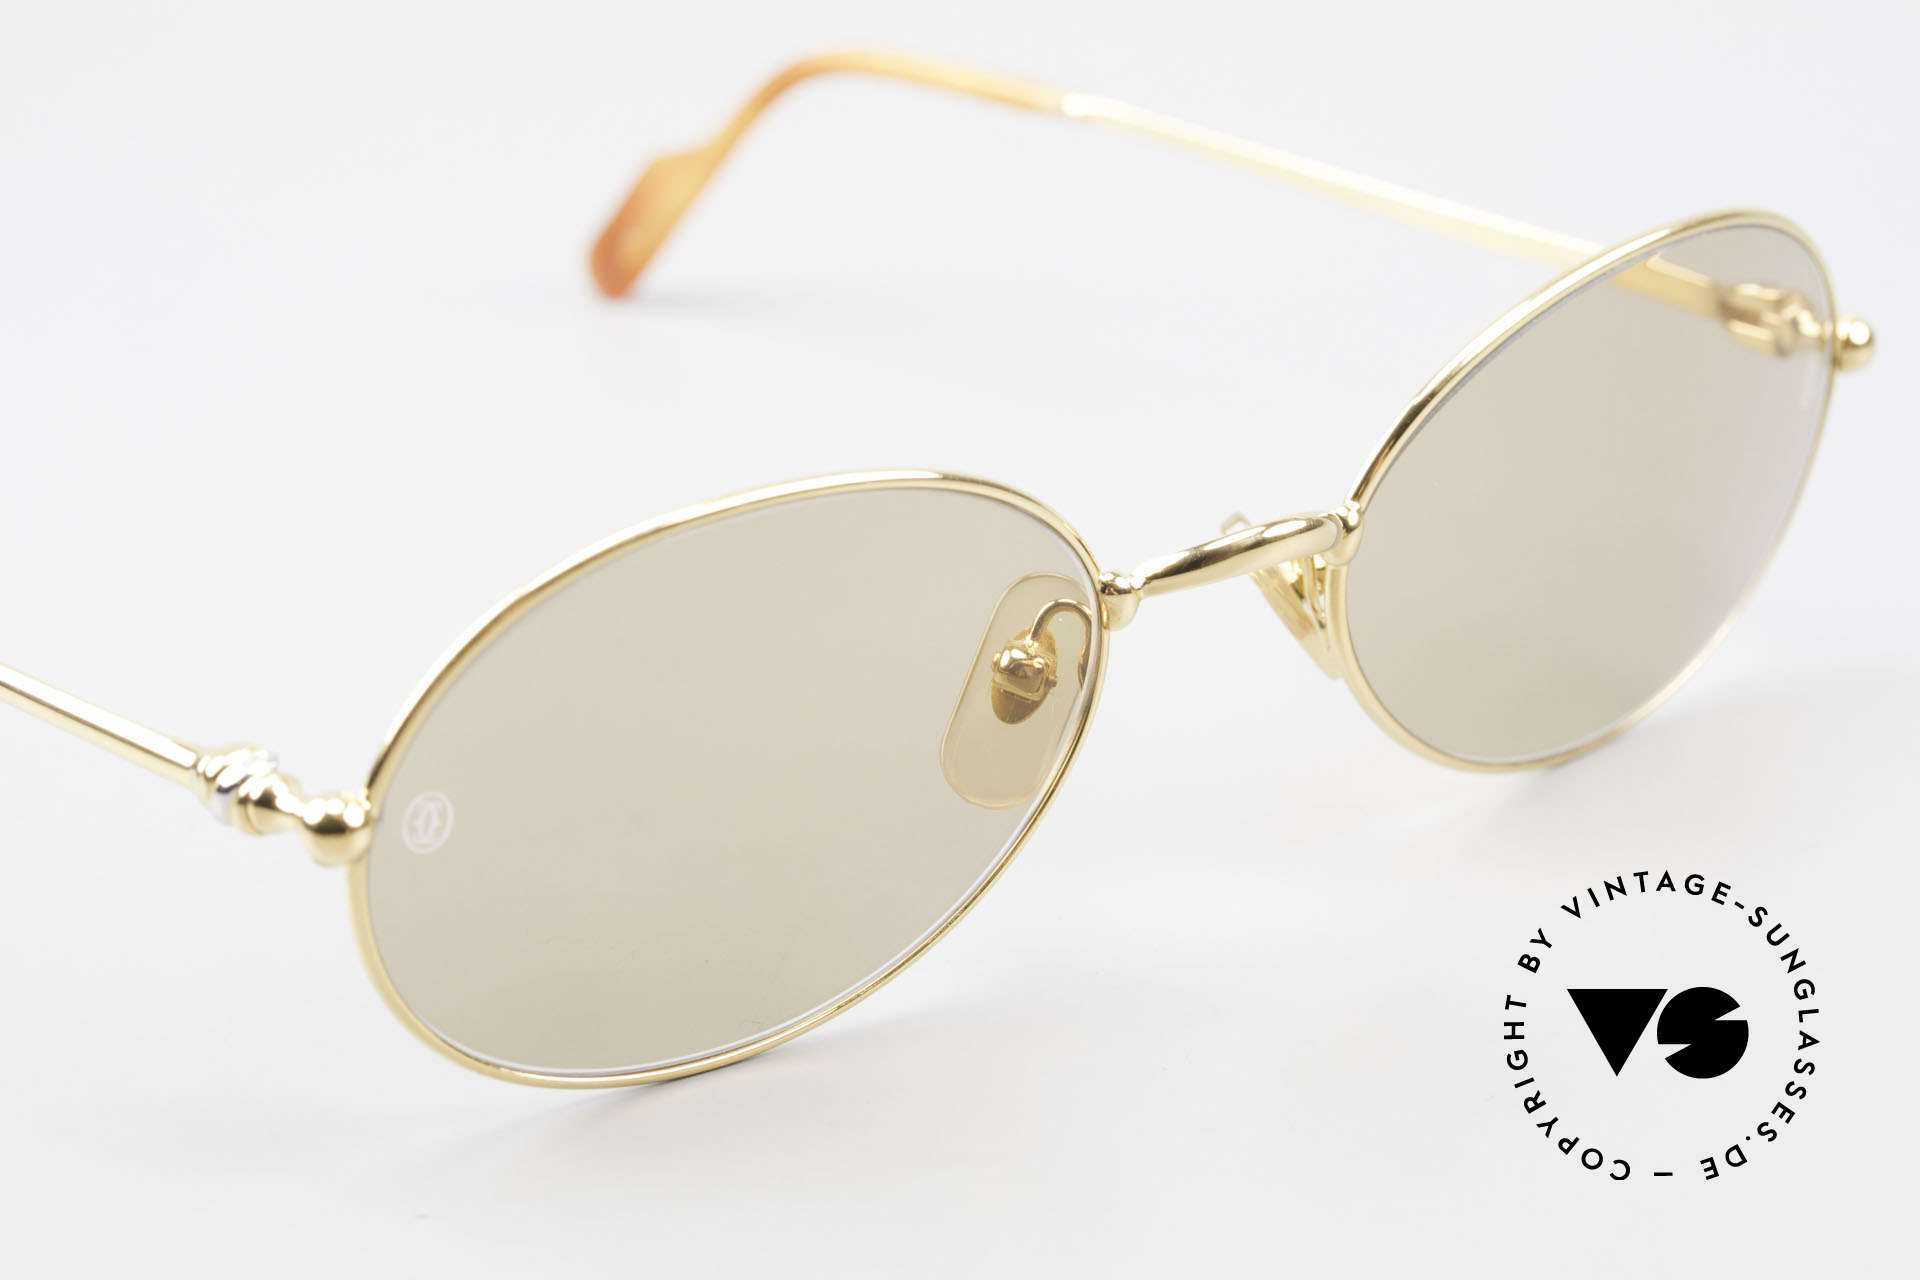 Cartier Saturne - L Oval 90's Luxury Sunglasses, 2nd hand, but in absolutely mint condition; scratch-free, Made for Men and Women